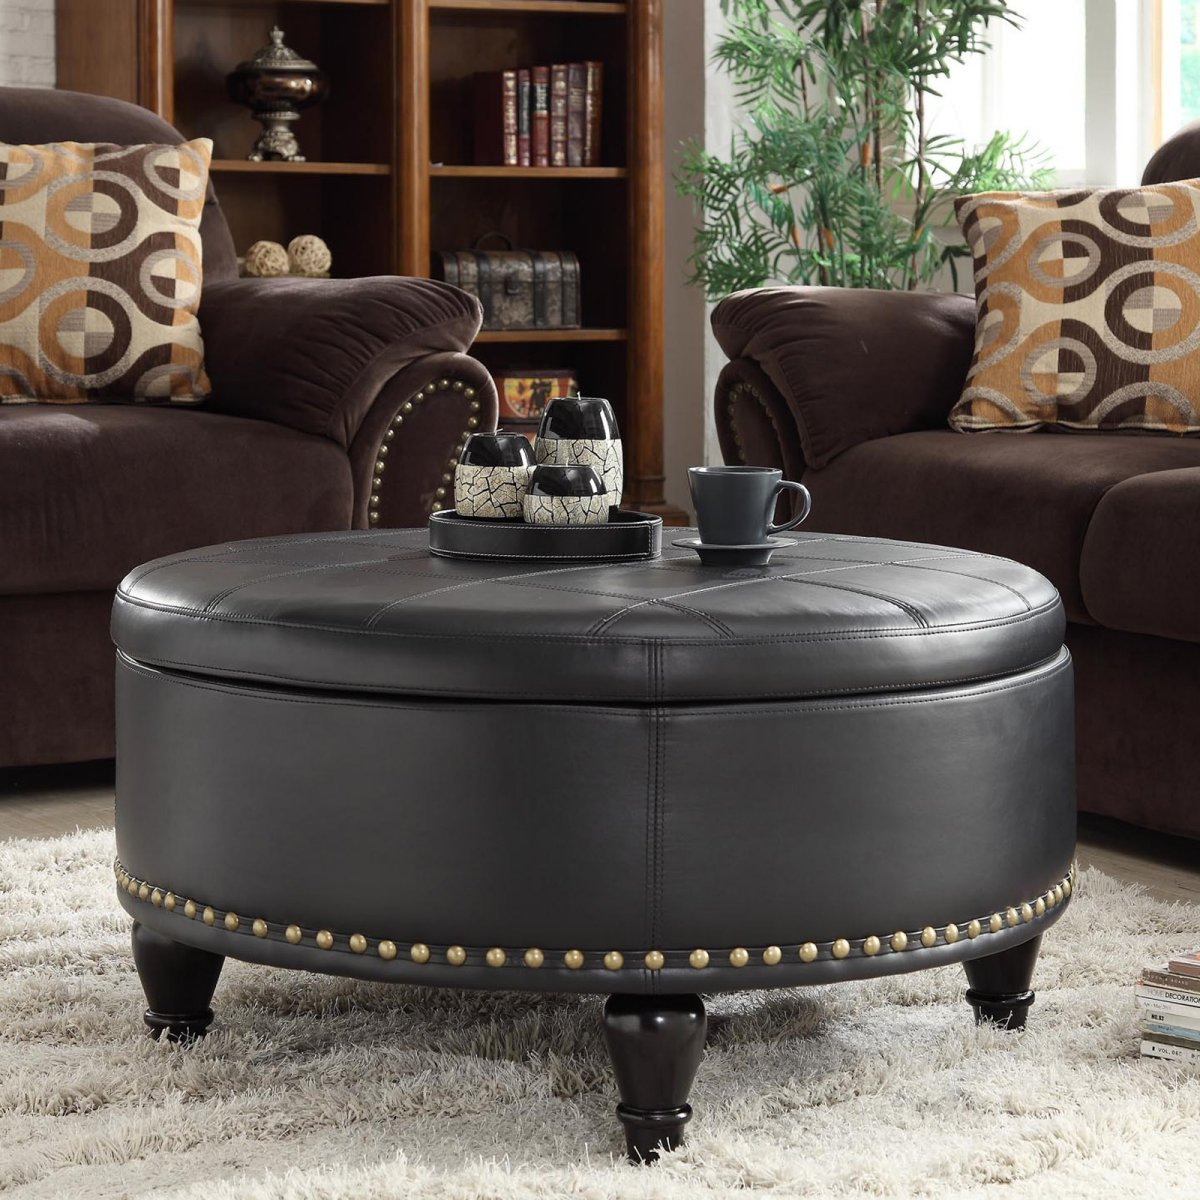 Round Leather Storage Ottoman Coffee Table | Round Storage Ottoman | Large Square Ottoman